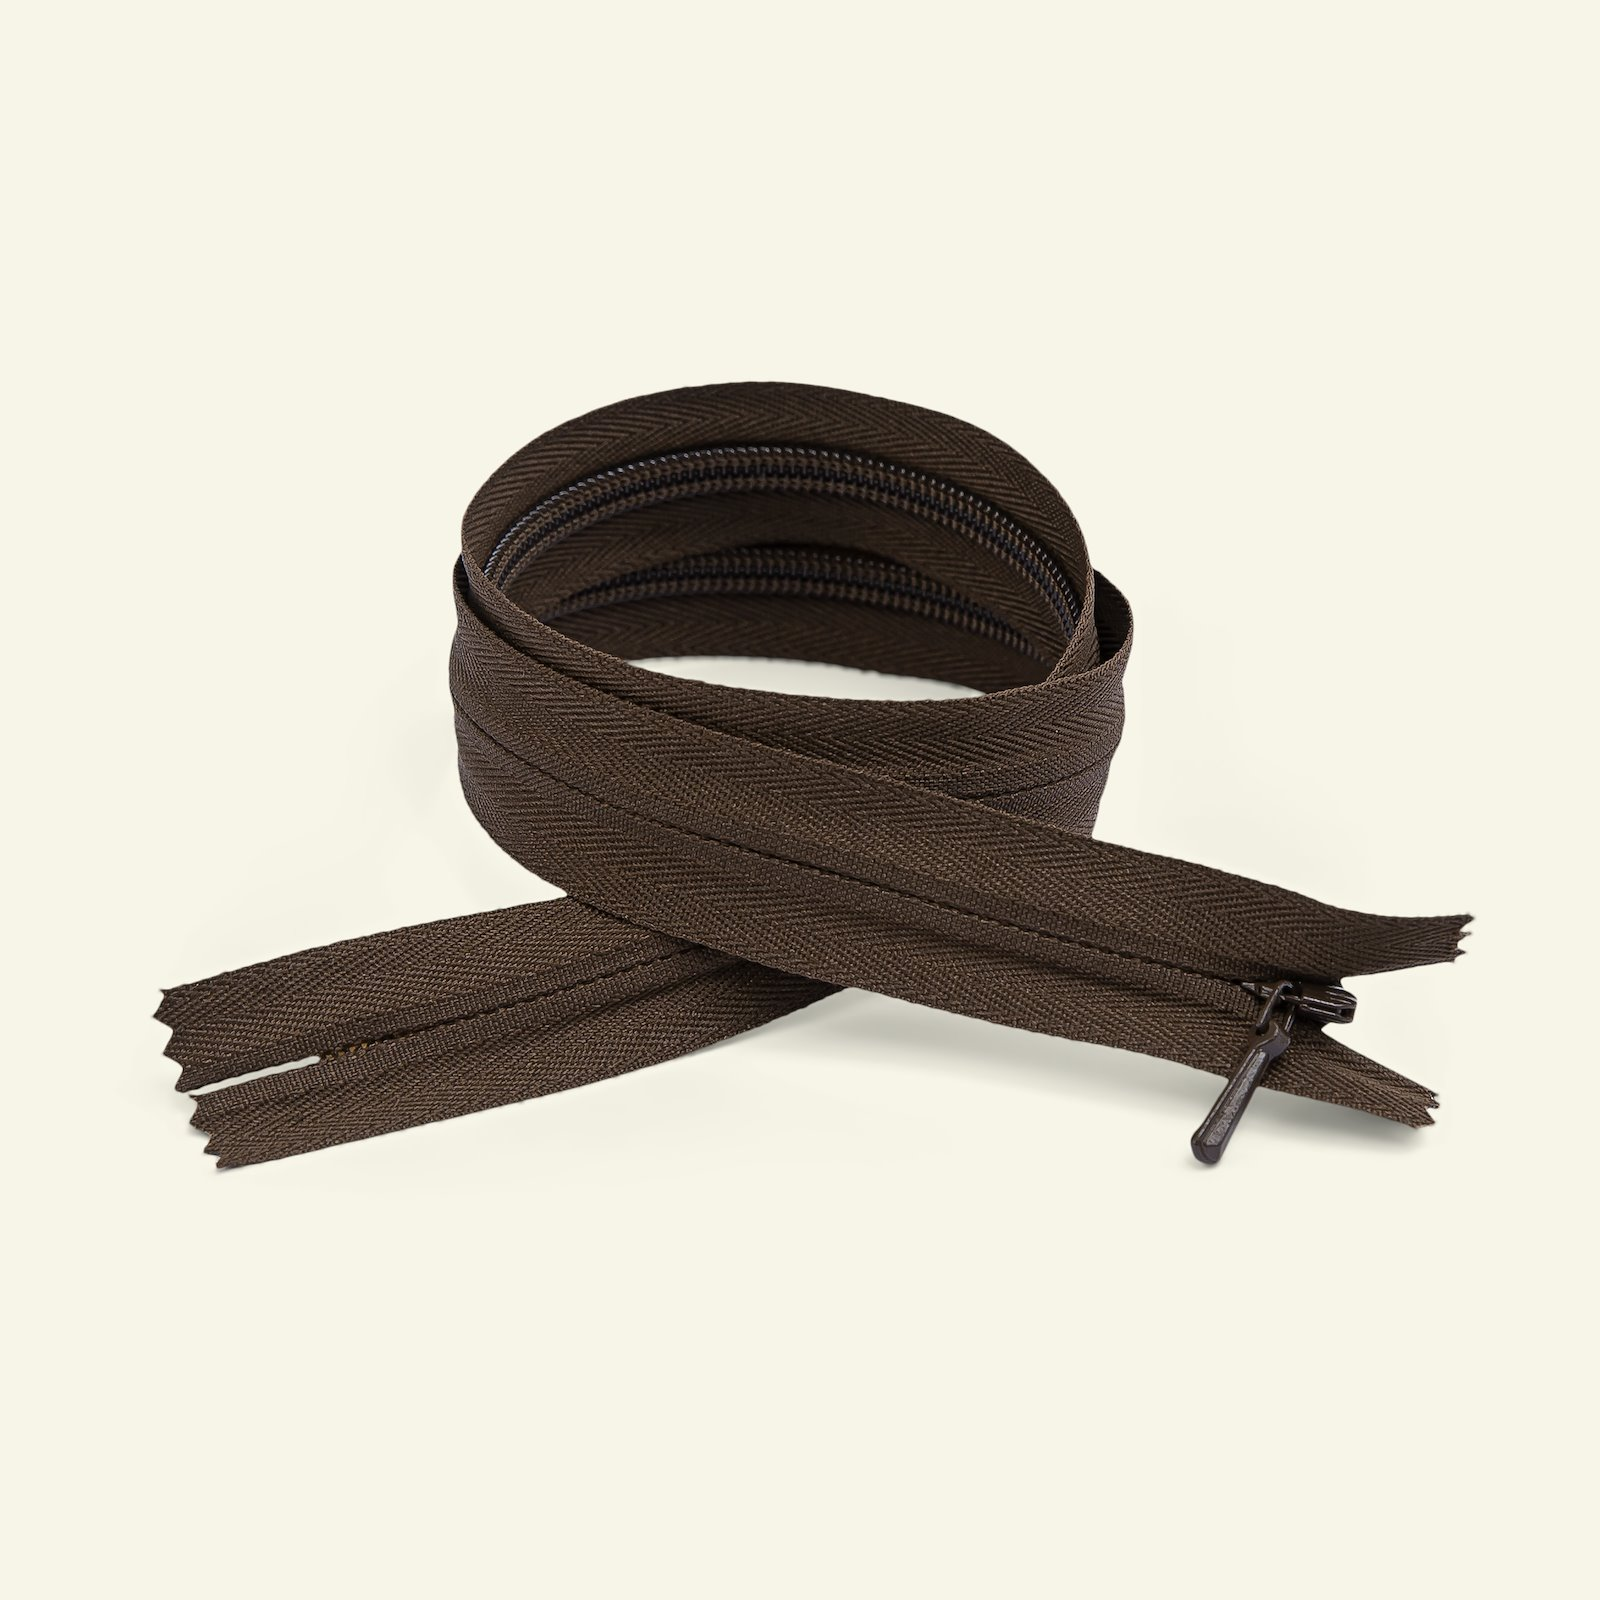 YKK zip 4mm invisible closed 35cm brown x40737_pack